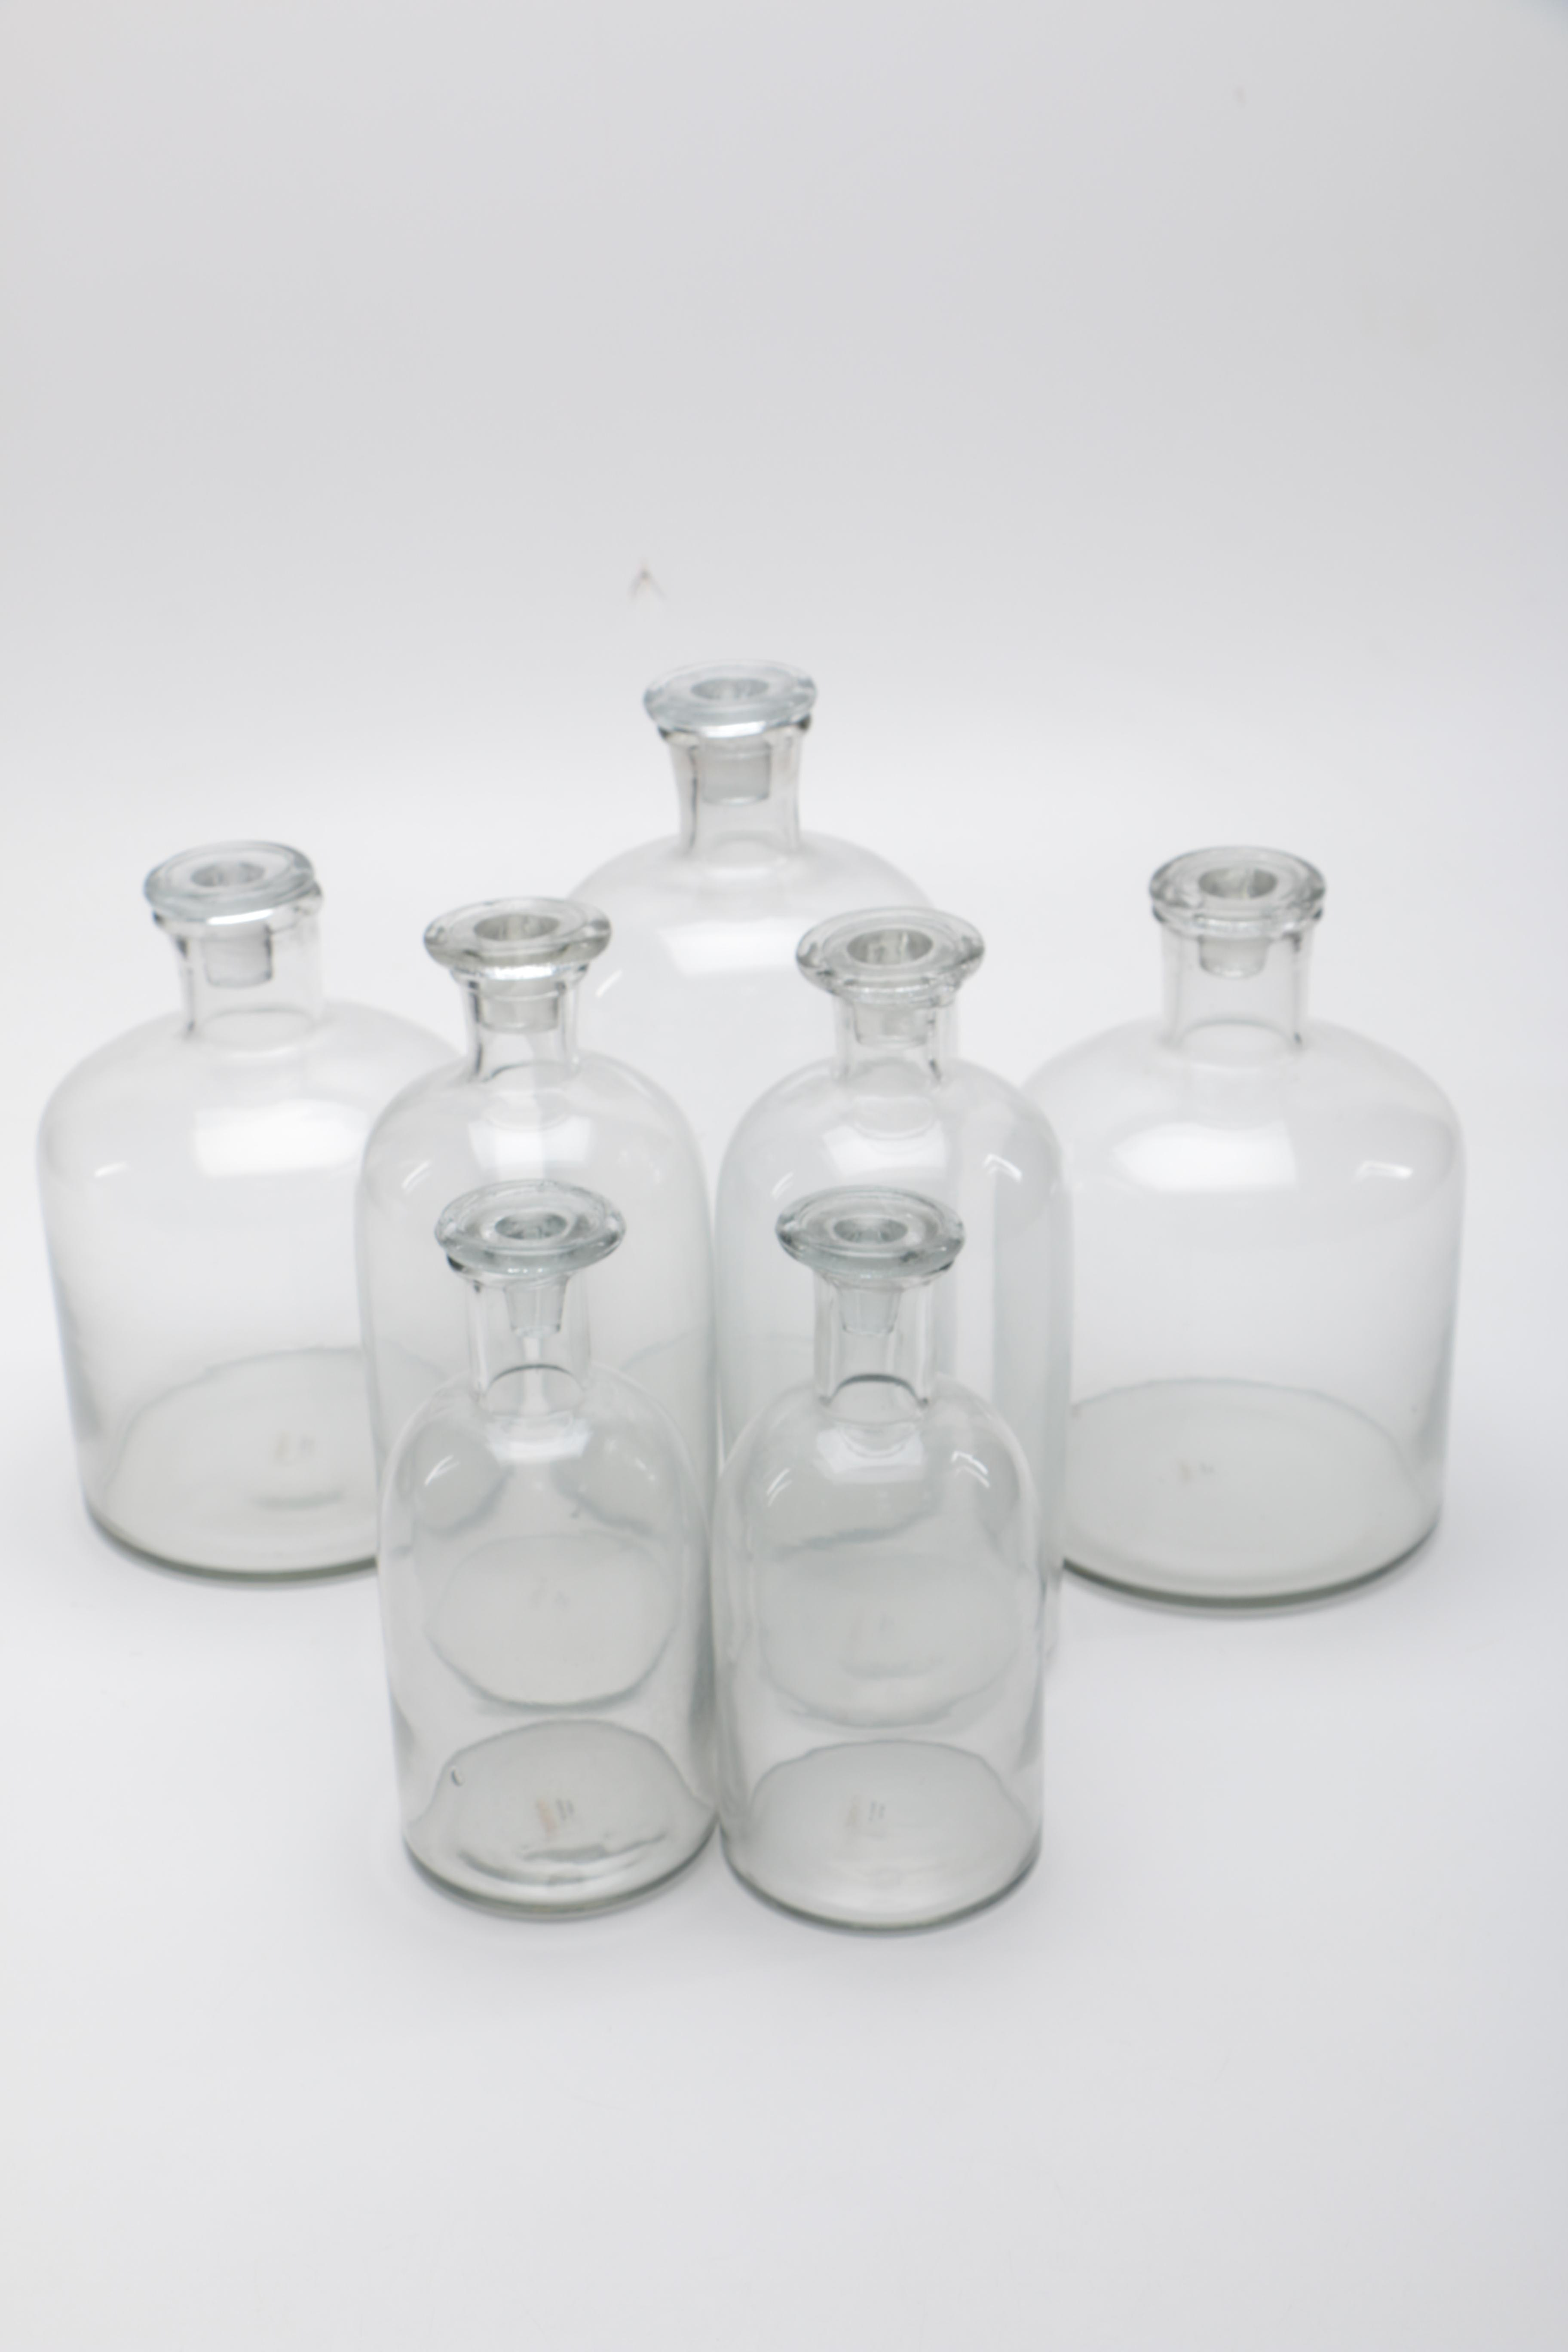 Decorative Apothecary Styled Bottles by Roost